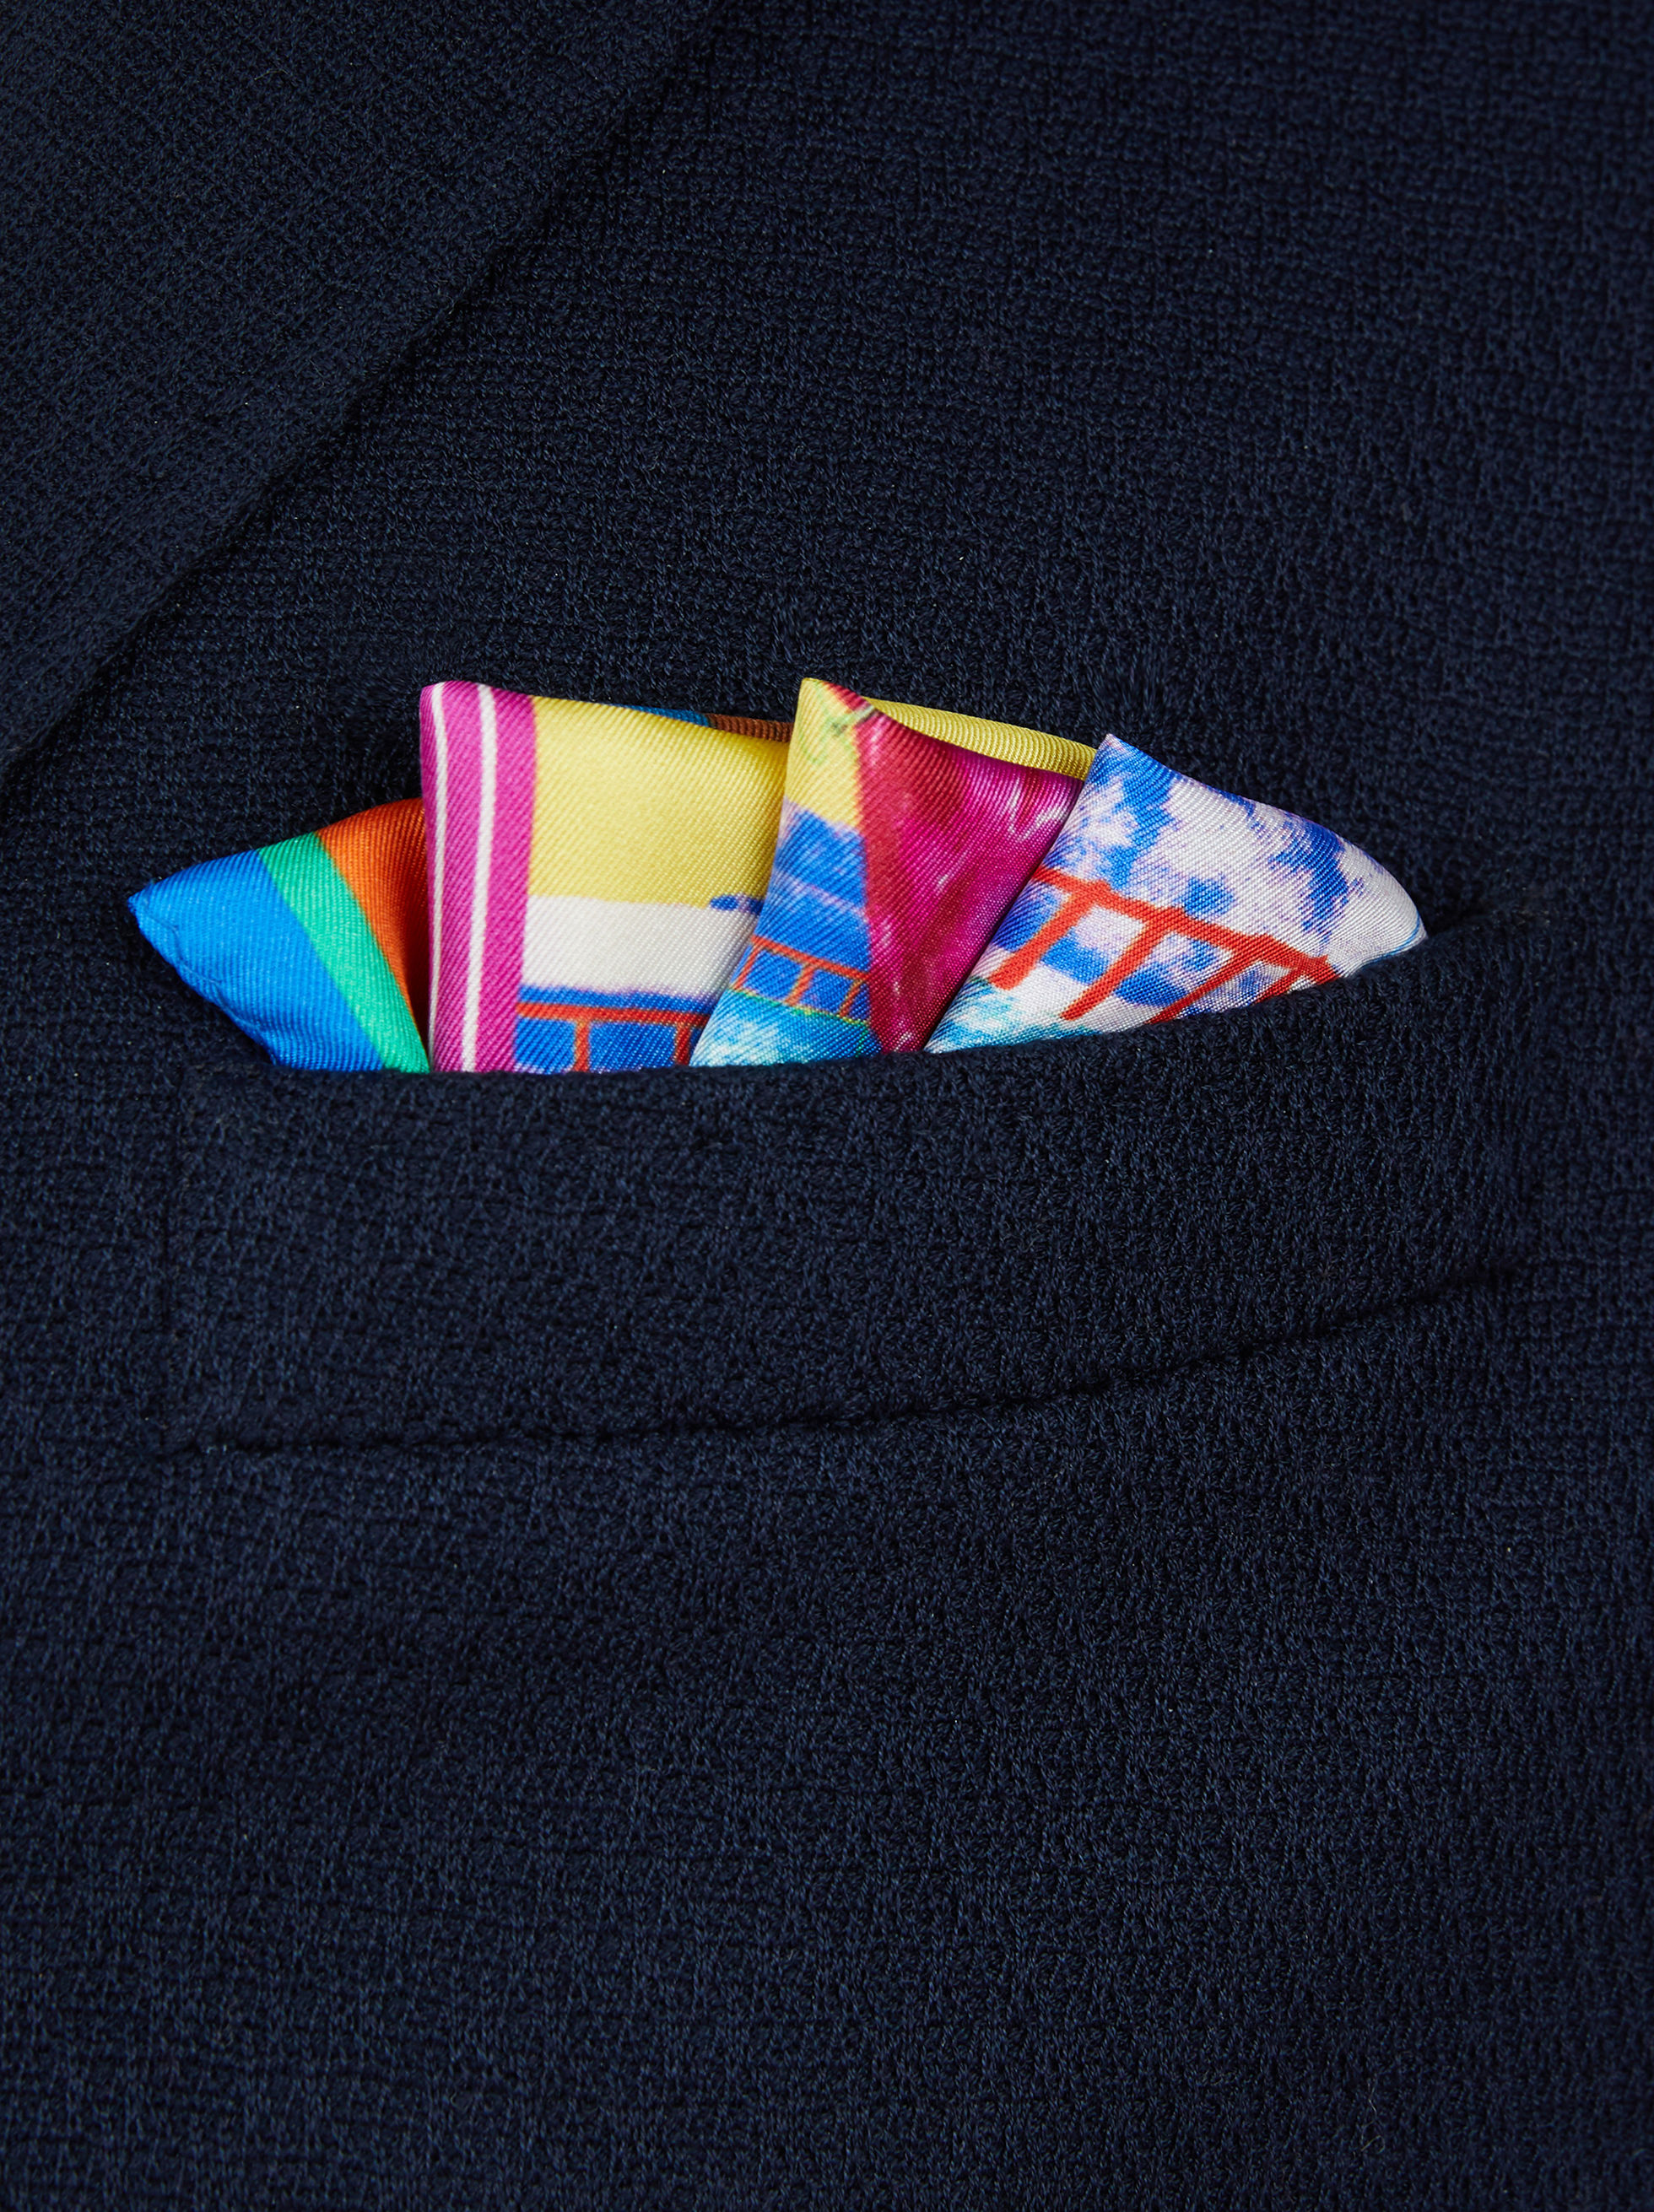 POCKET SQUARE WITH EQUESTRIAN PRINT